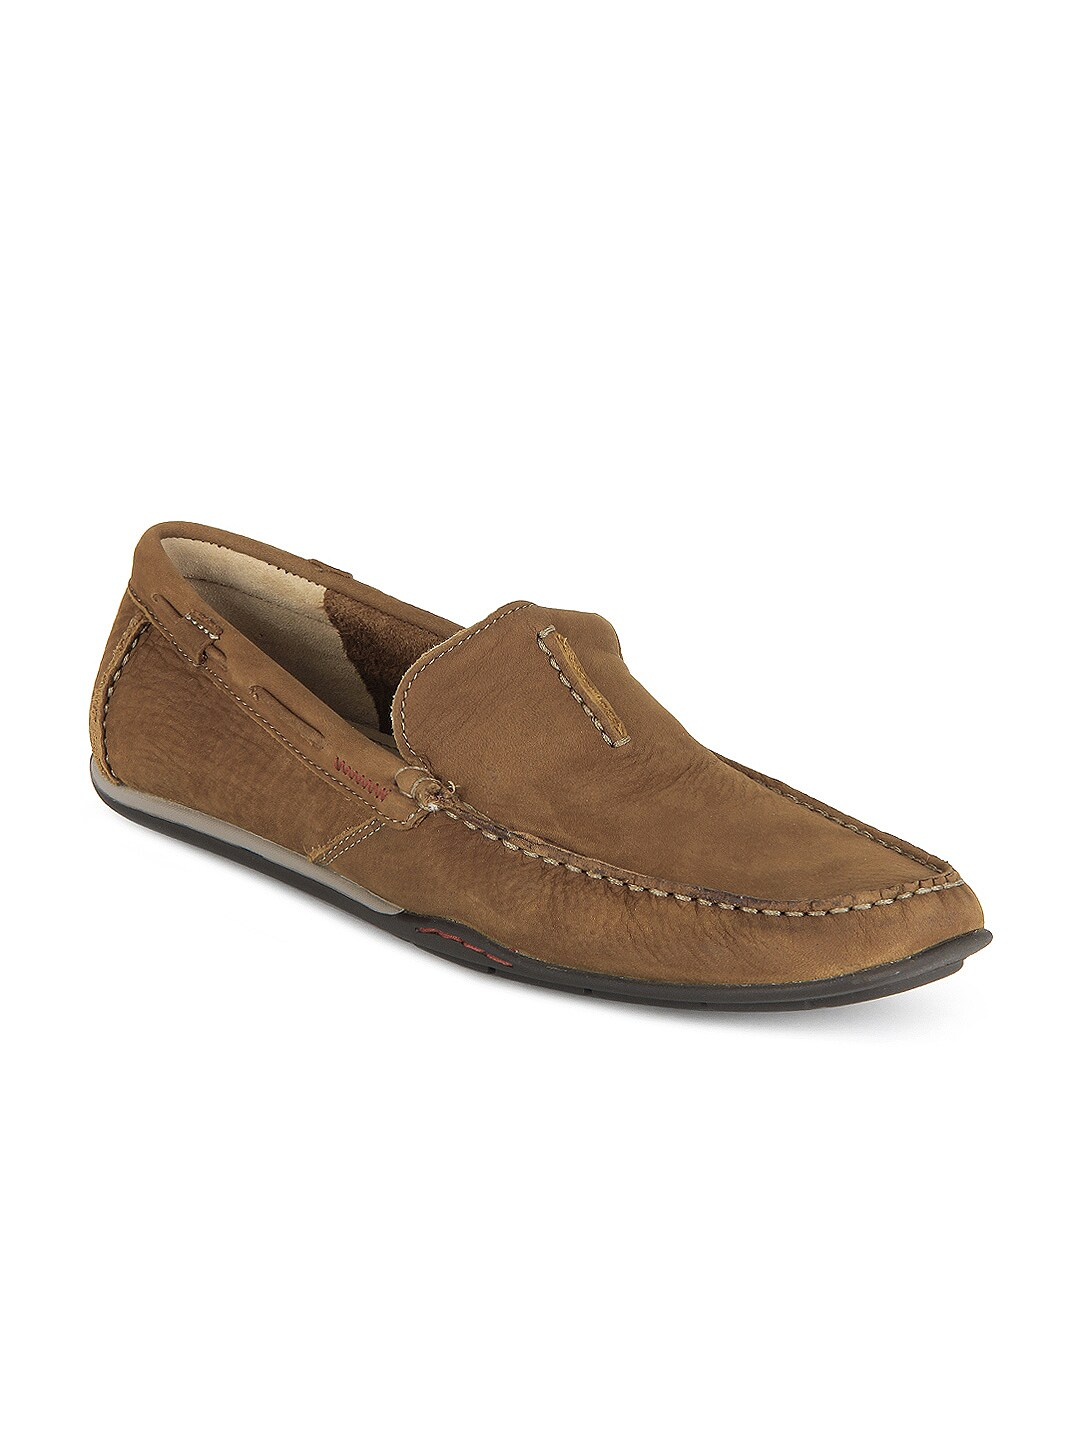 Clarks Men Tan Brown Rengo Rumba Leather Loafers